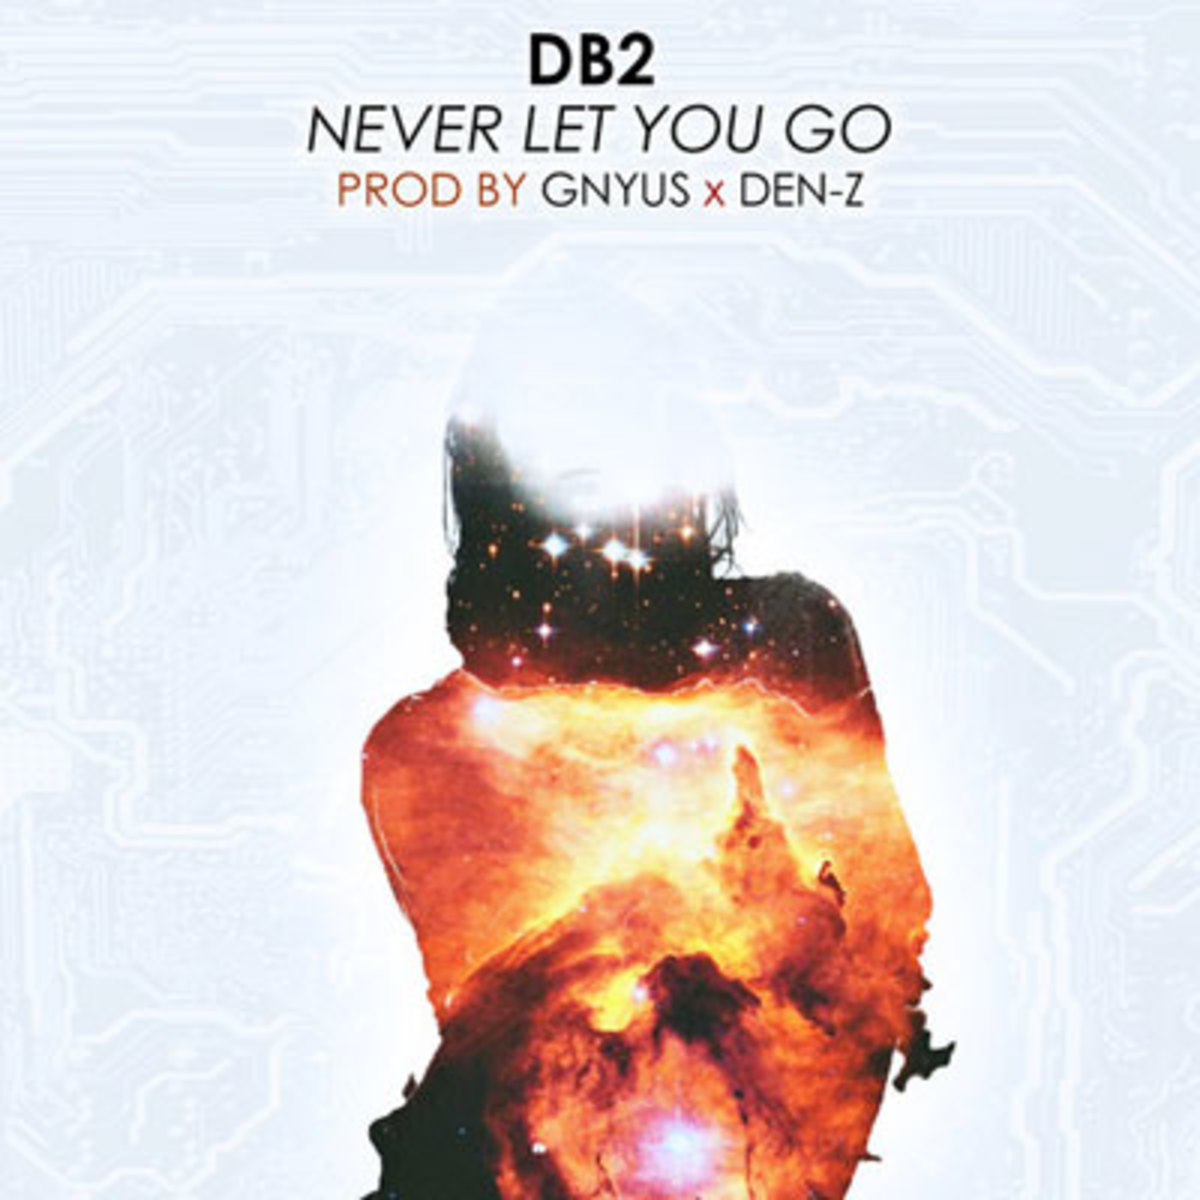 db2-neverlet.jpg